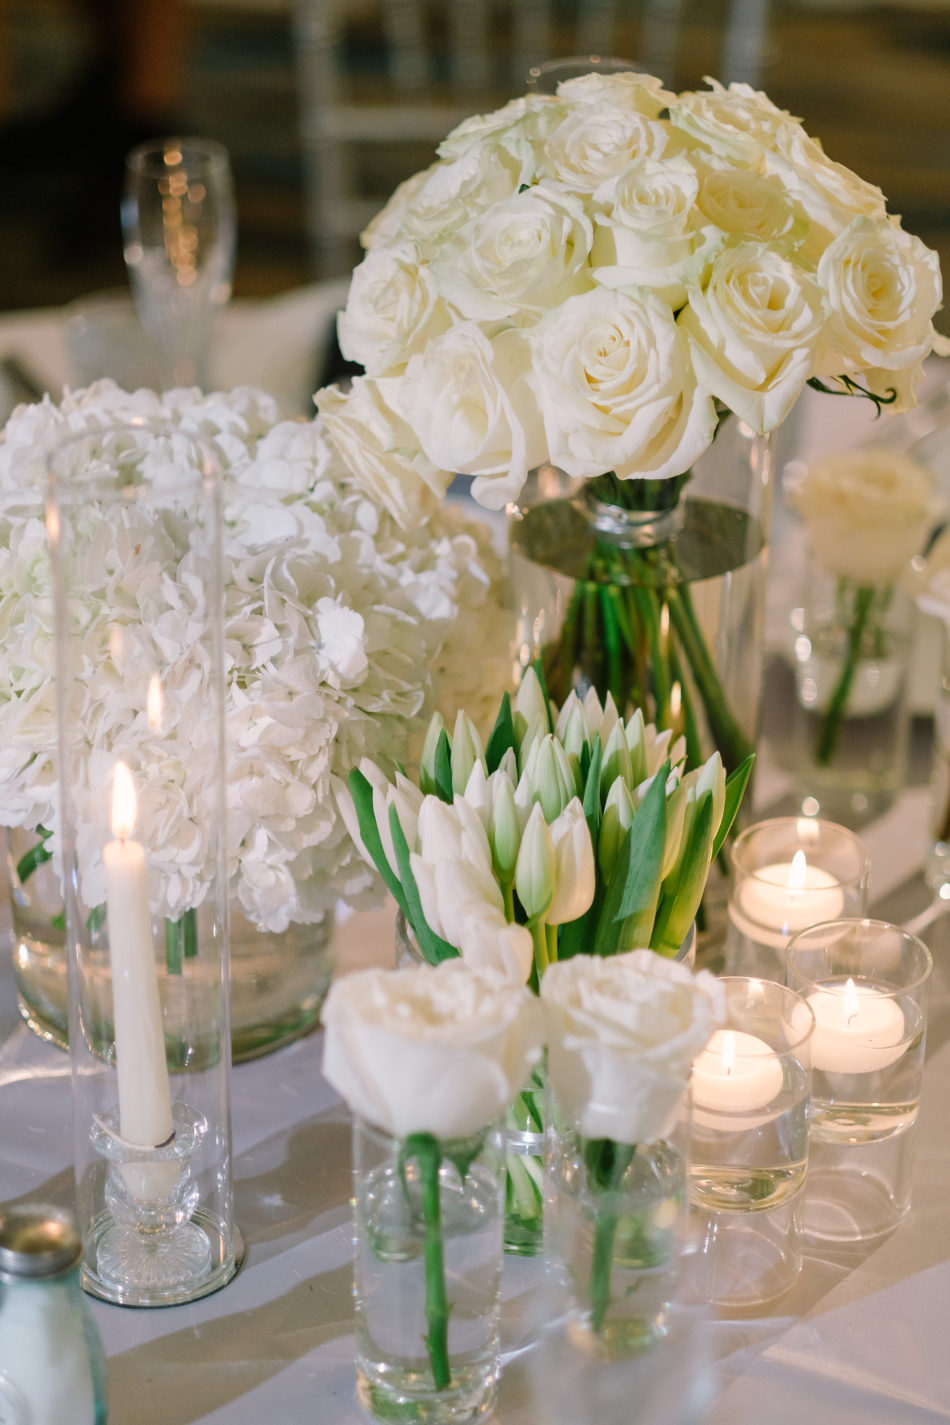 white blooms, white centerpieces, white florals, magnificent all-white wedding, floral design, florist, wedding florist, wedding flowers, orange county weddings, orange county wedding florist, orange county florist, orange county floral design, flowers by cina